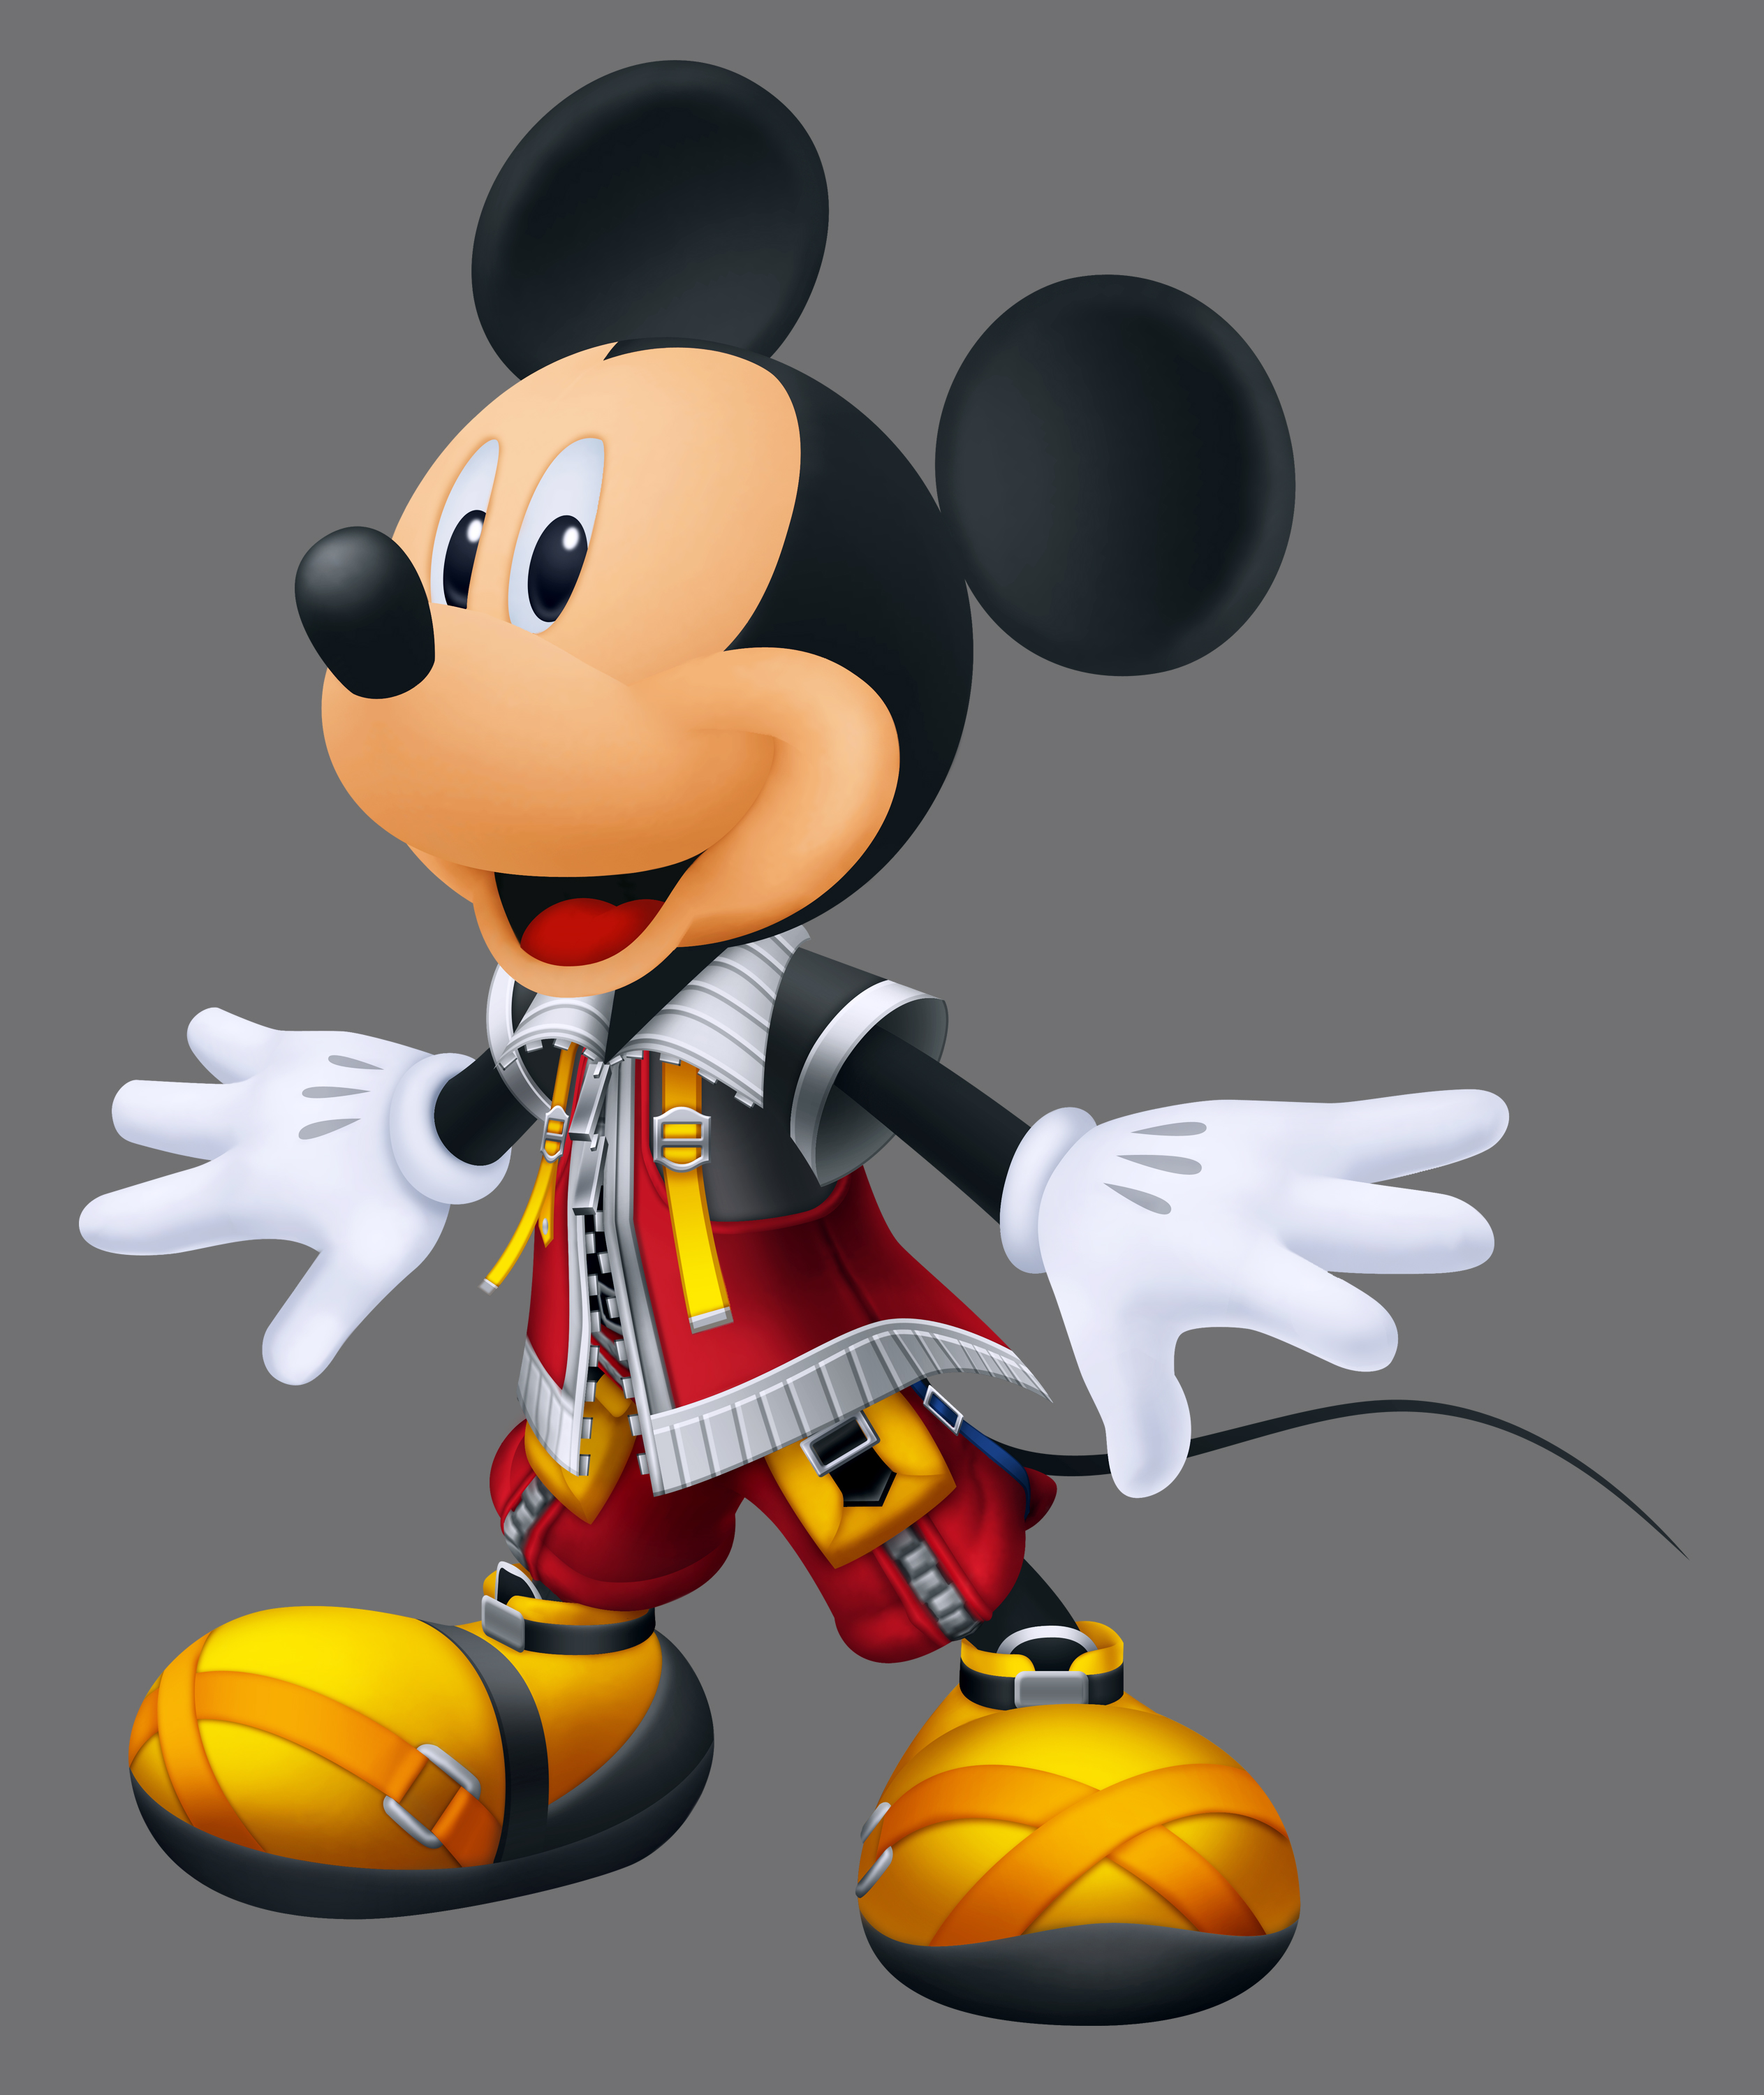 mickey_MickeyMouse-Disney-ZerochanAnimeImageBoard